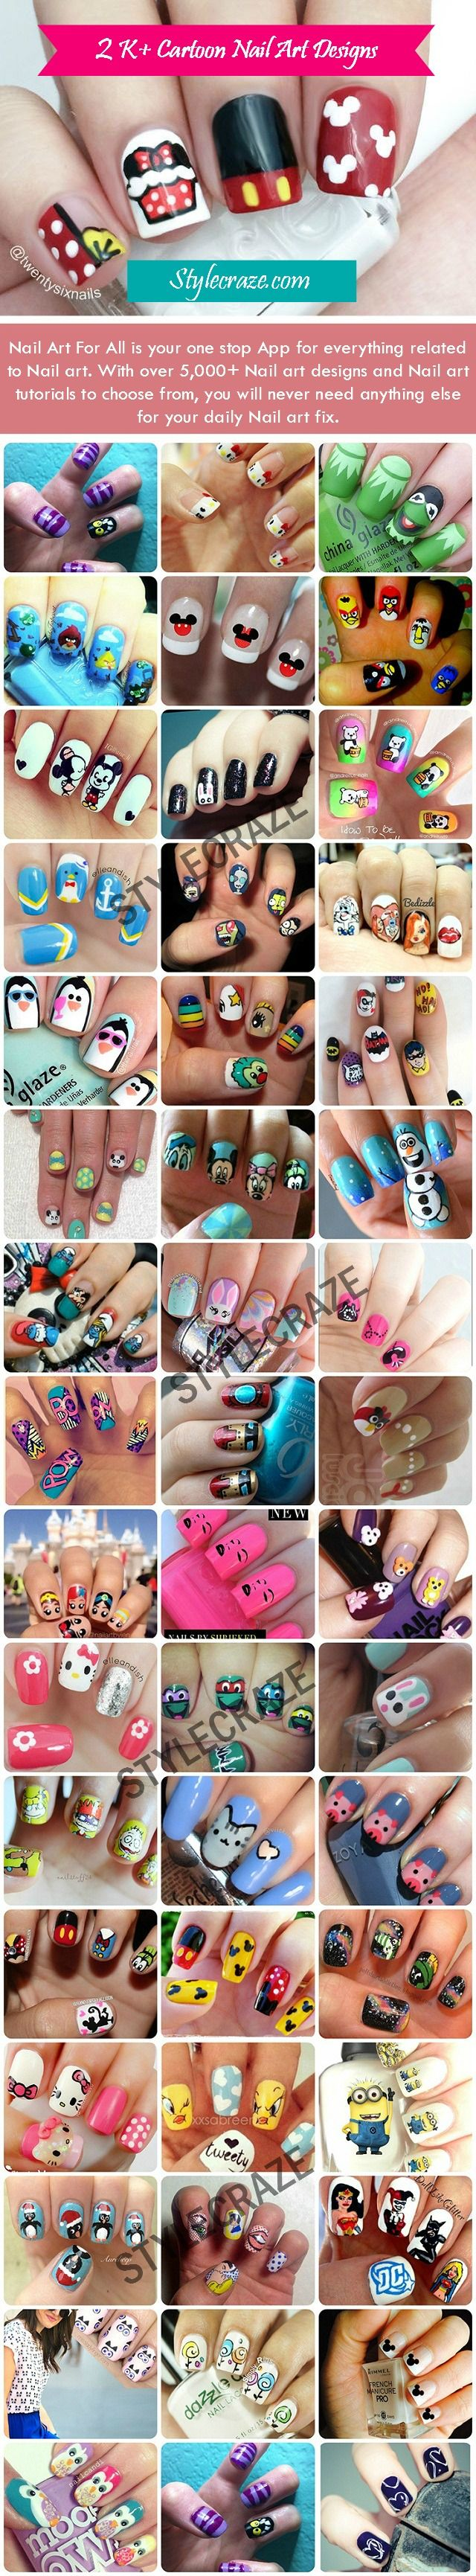 Nail Art For All is your one stop App for everything related to Nail art. With over 20 K+ Nail art designs and Nail art tutorials to choose from, you will never need anything else for your daily Nail art fix.